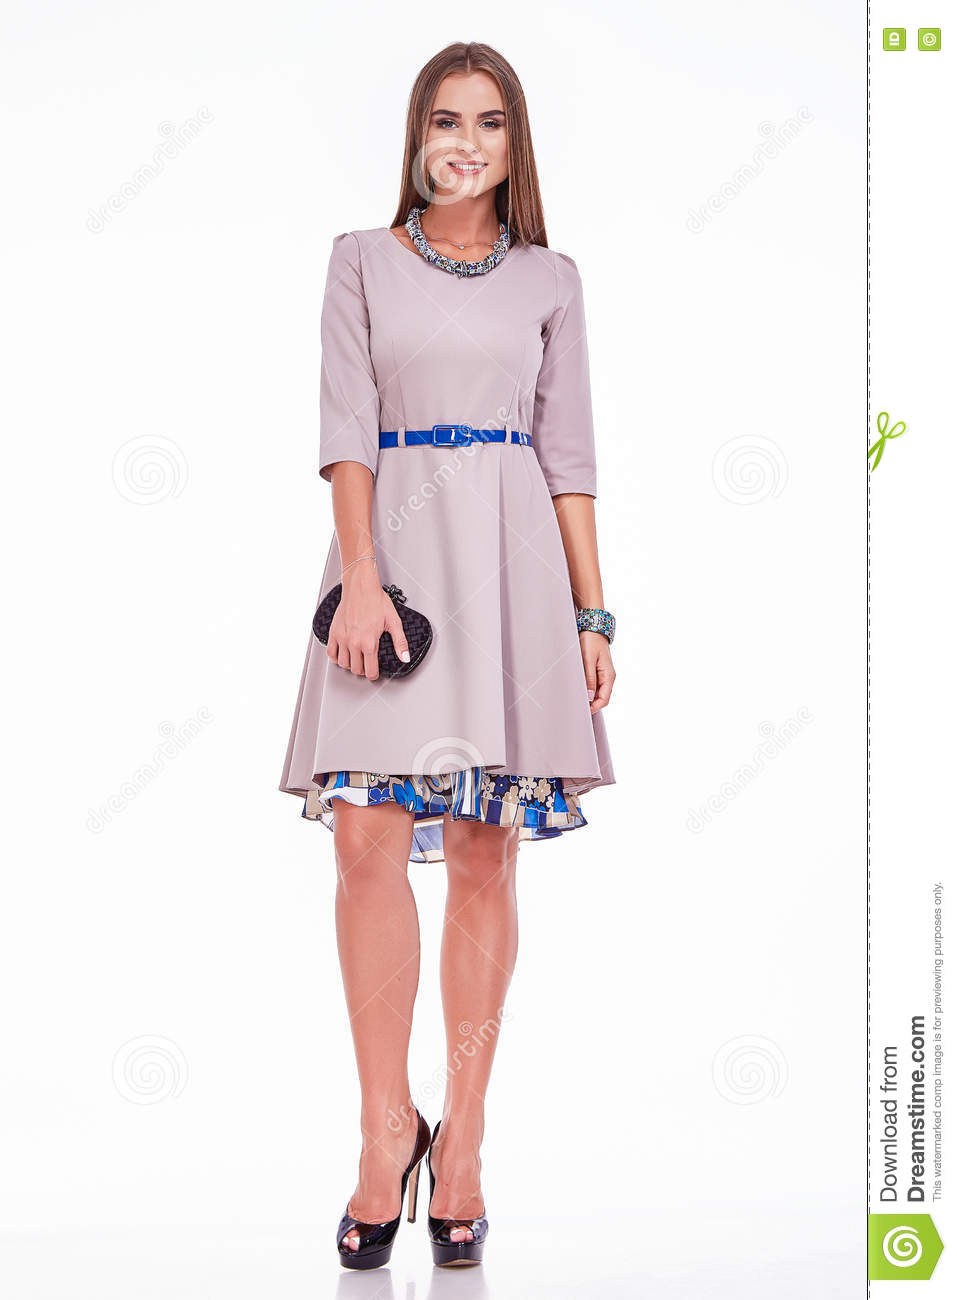 c92f3a24cd90 Beauty stylish woman wear silk dress fashion style look business clothes  casual for meeting and party woman with long brunette hair and tanned skin  makeup ...